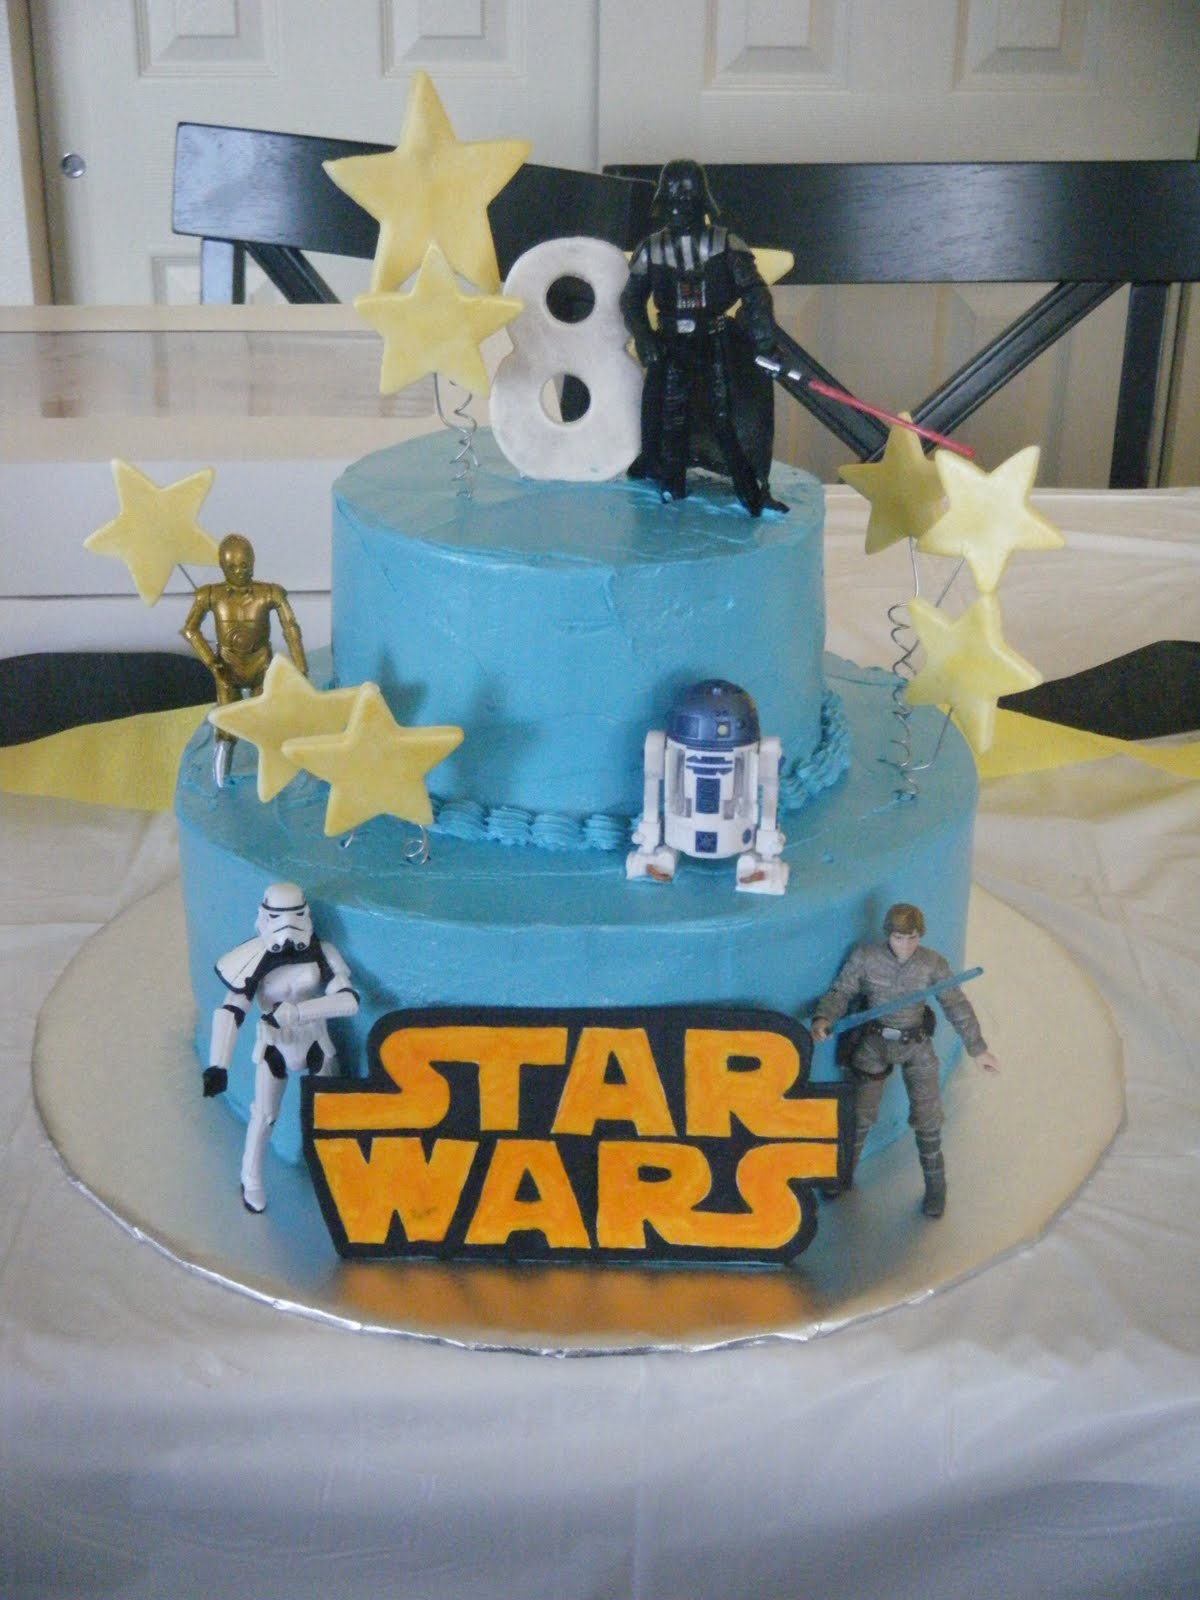 Images Of A Star Wars Cake : Live. Laugh. NERD!: Cakey Wednesday: May the Cake be With ...